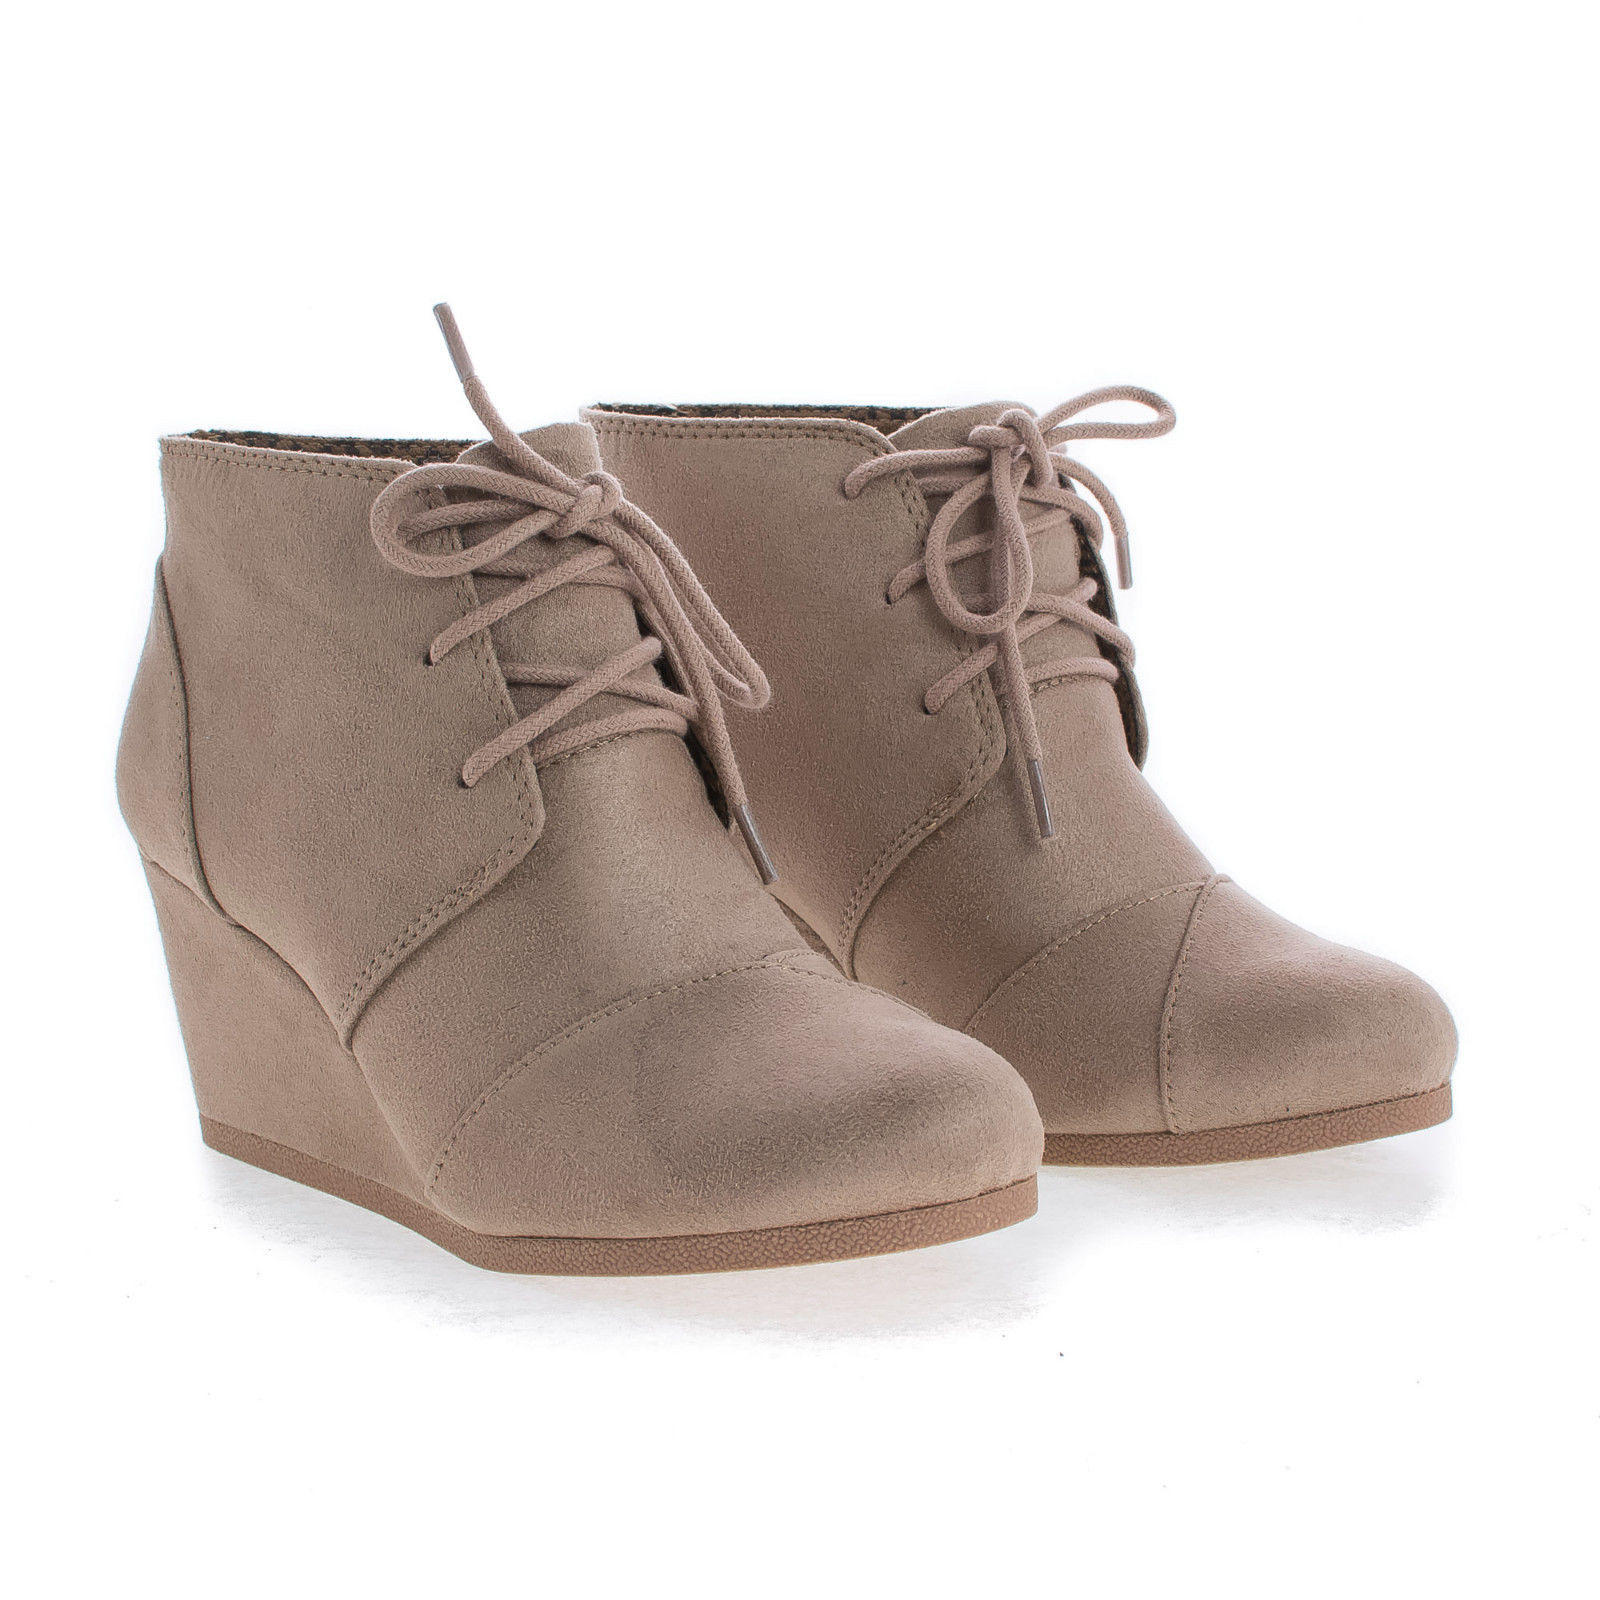 5e21ab3d85333 Rex By Soda, Lace Up Oxford Ankle Bootie Round Toe High Hidden Wedge Heel  Women's Shoe